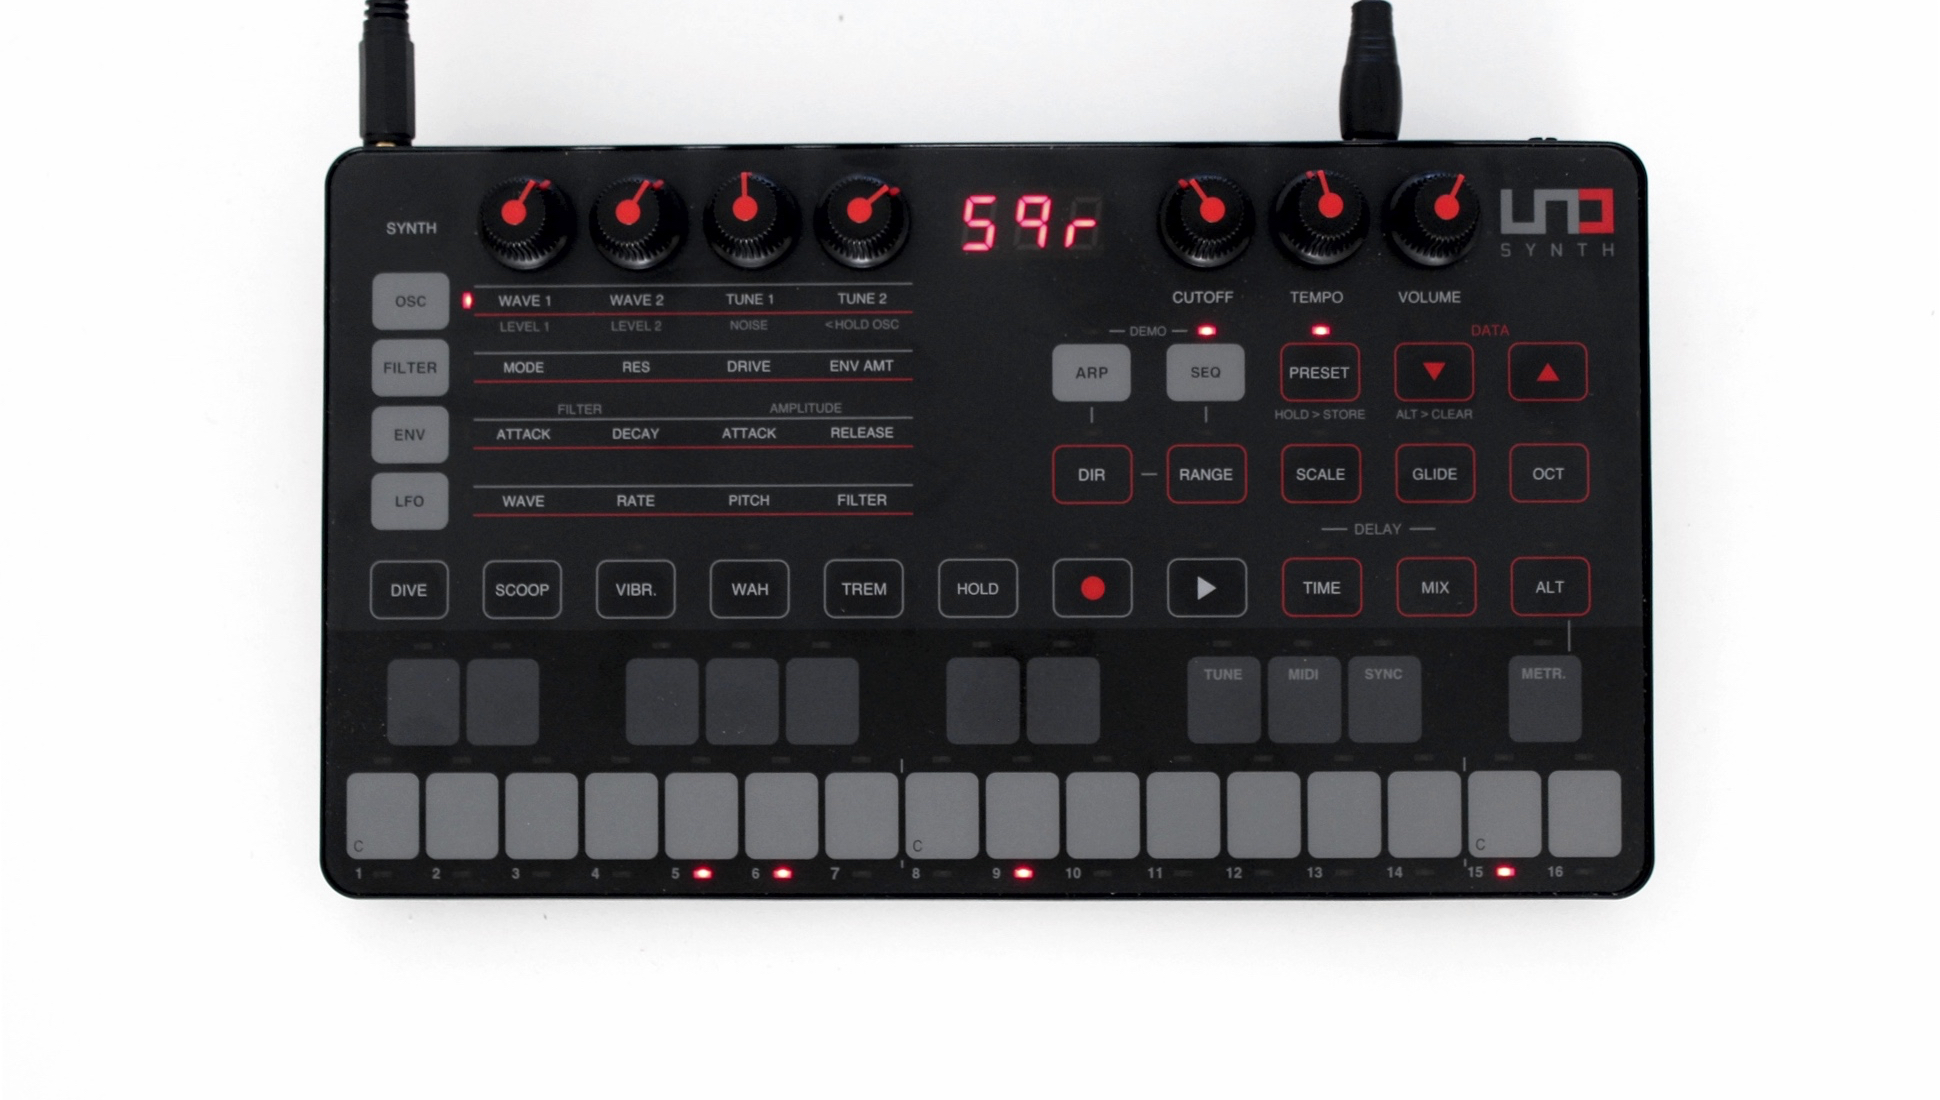 IK Multimedia UNO synth review: A contender for the budget synth crown